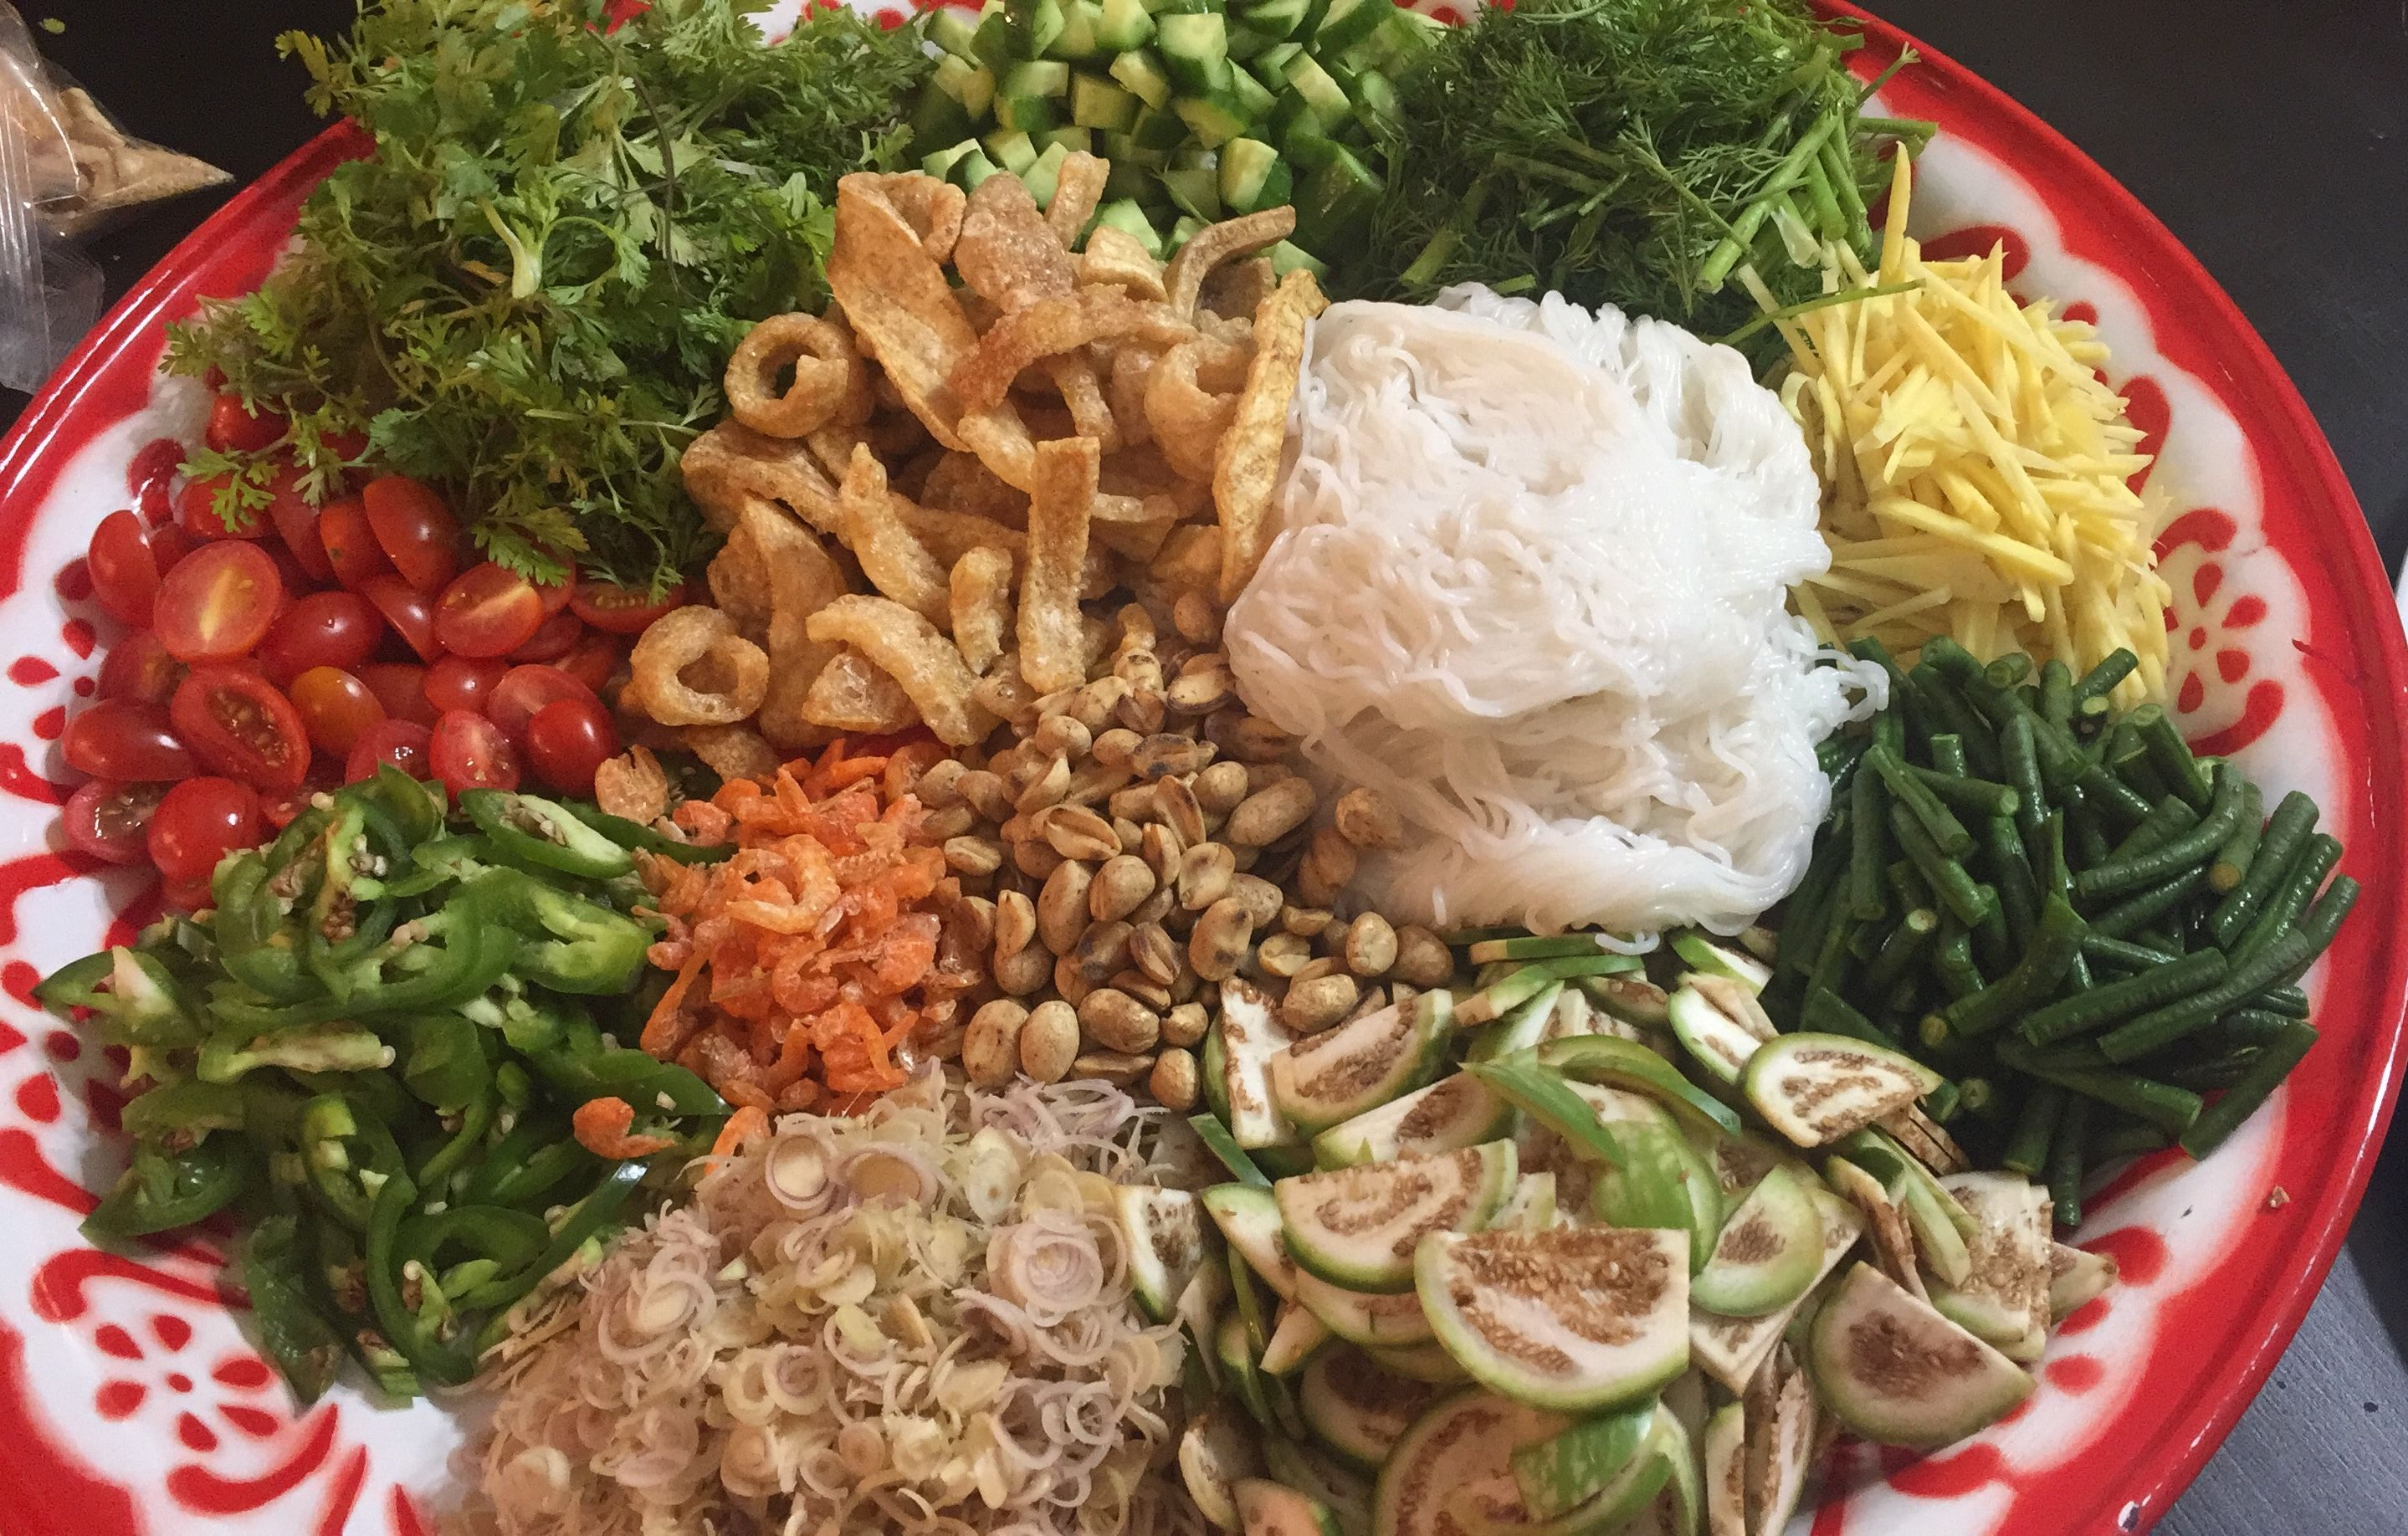 Lao Wrap Pun Platter Filled With Fresh Vegetables Herbs And Fillers Laos Food Asian Recipes Food